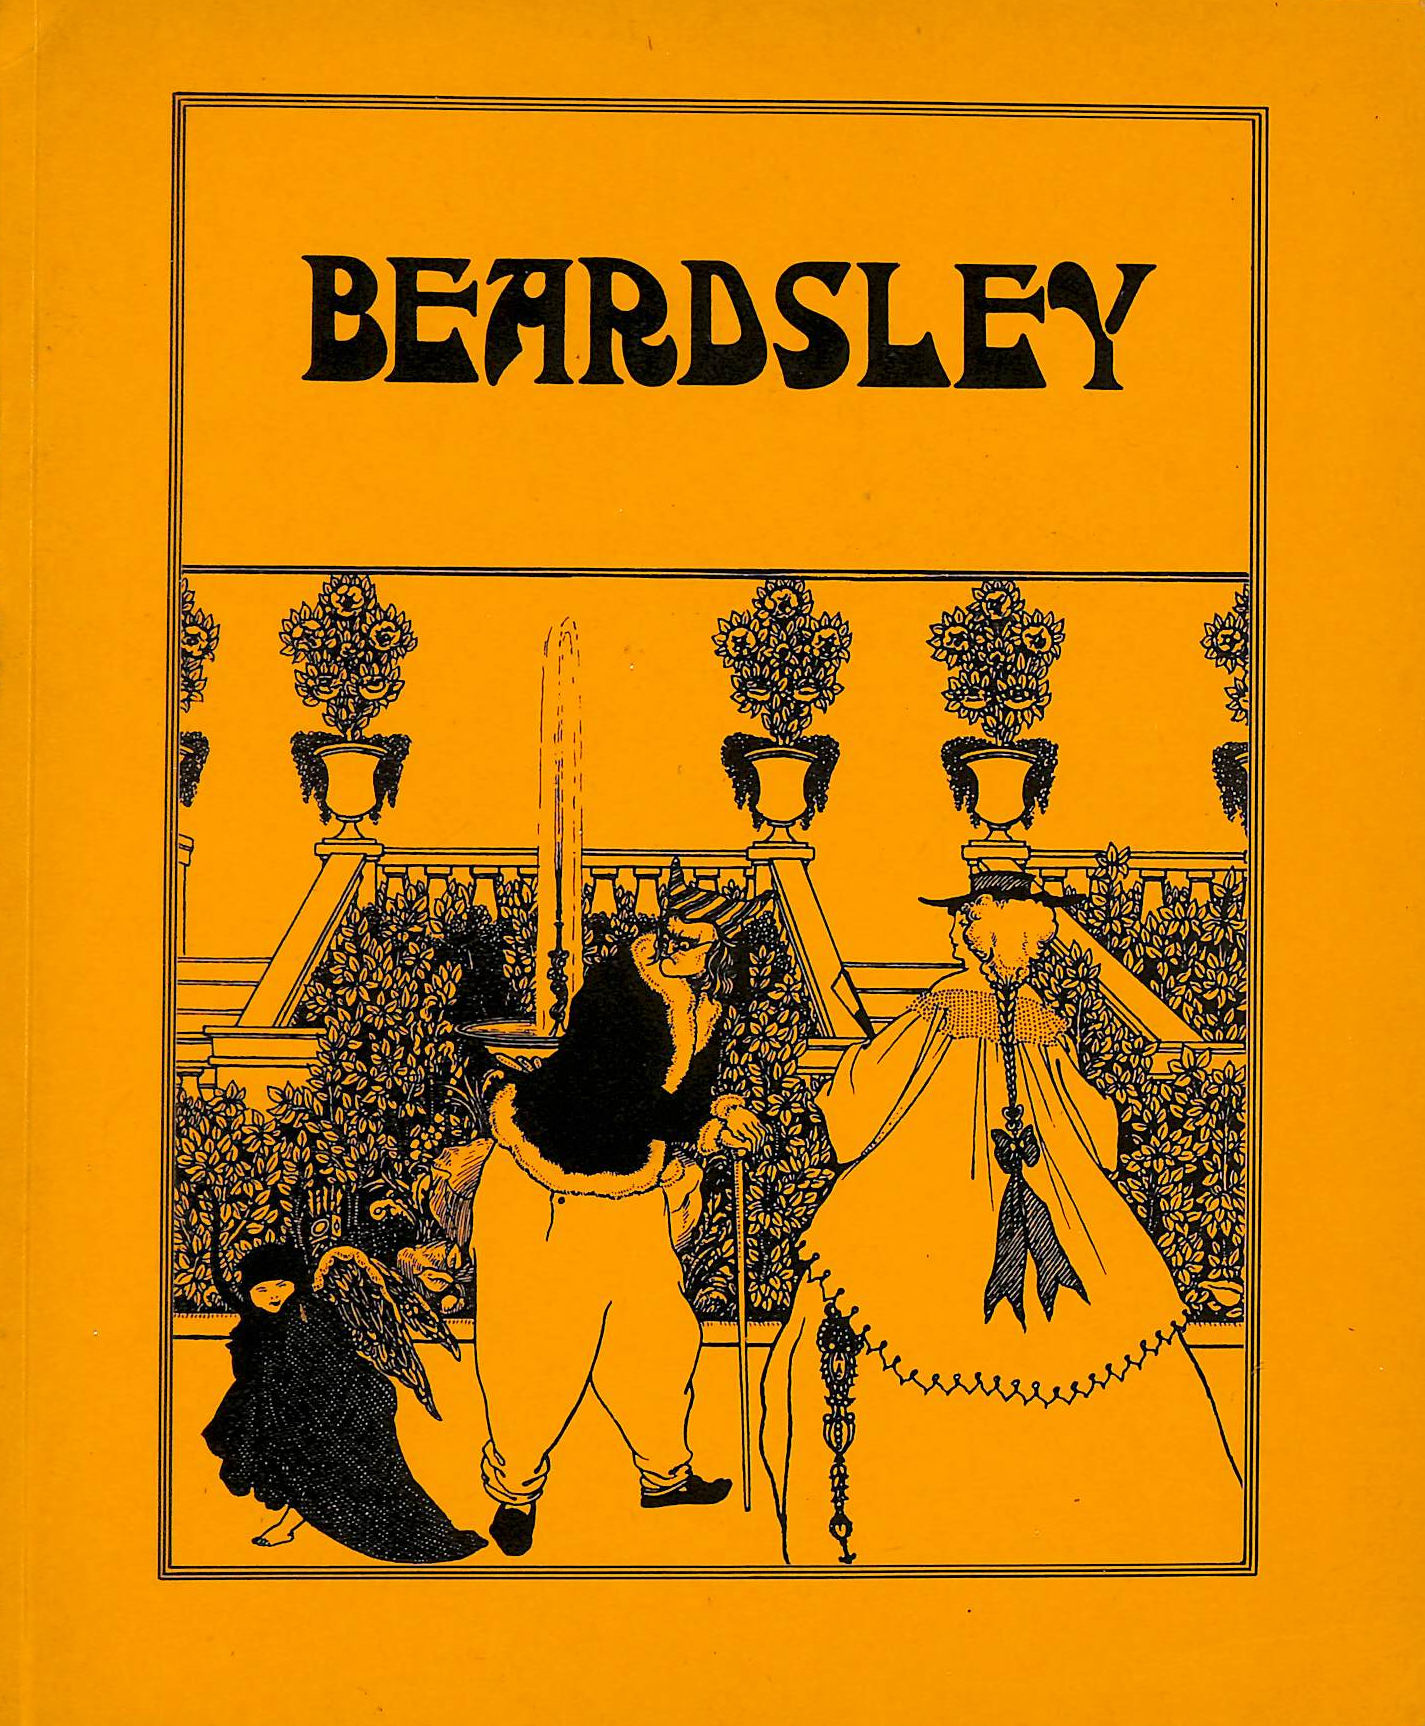 Image for Beardsley, being a collection of drawings by Aubrey Beardsley, selected and edited by David Pearson.